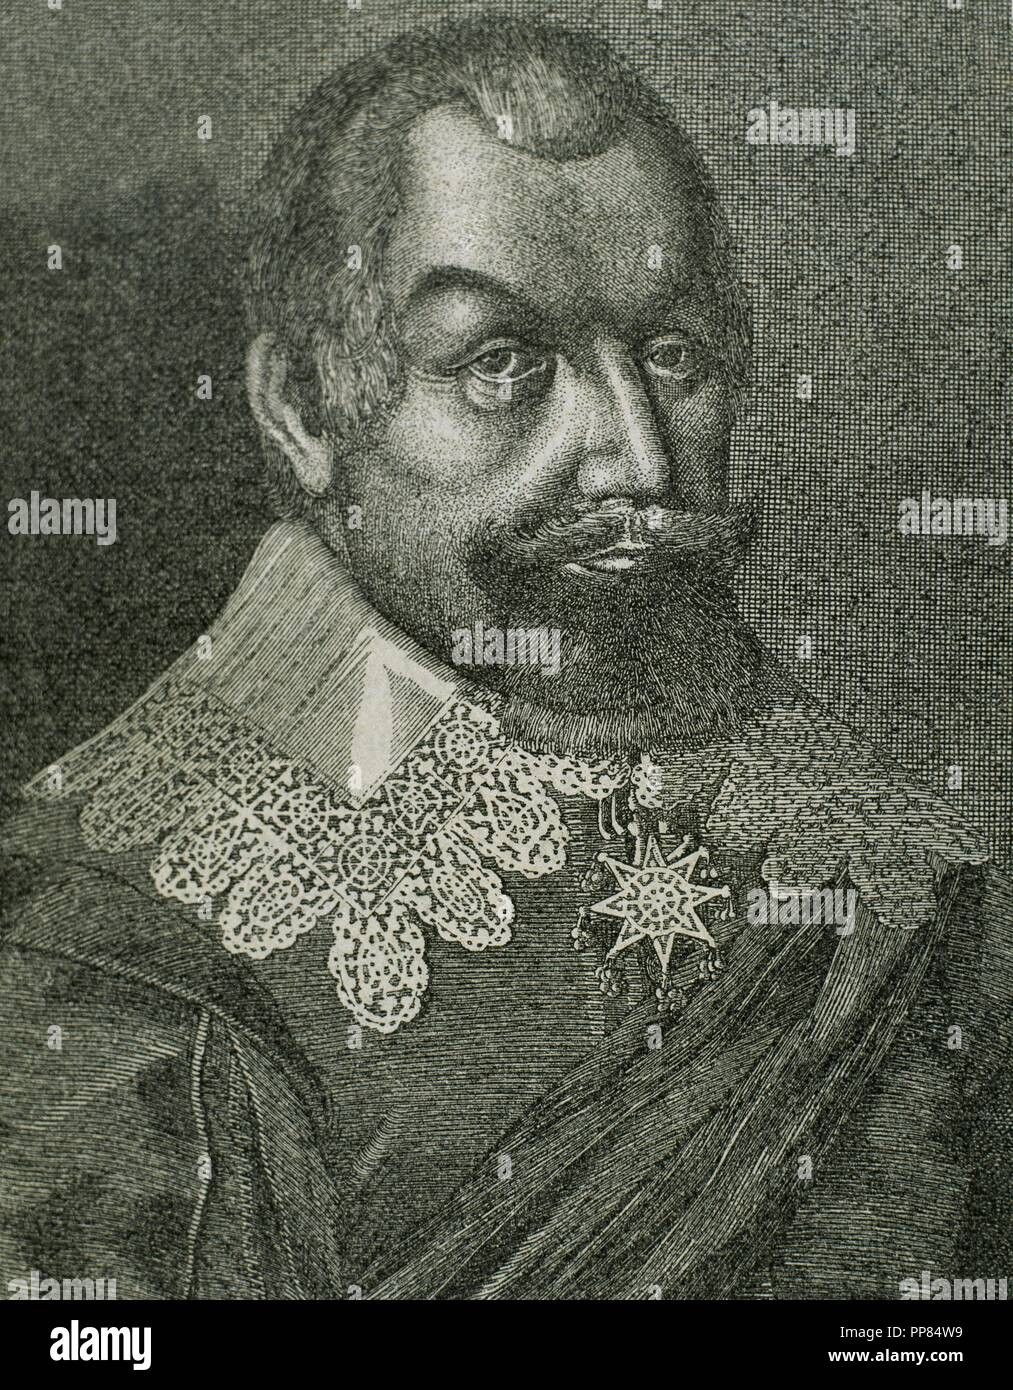 Axel Oxenstierna (1583-1654), Count of Sodermore. Swedish statesman. Portrait. Engraving by E. Hondius. - Stock Image